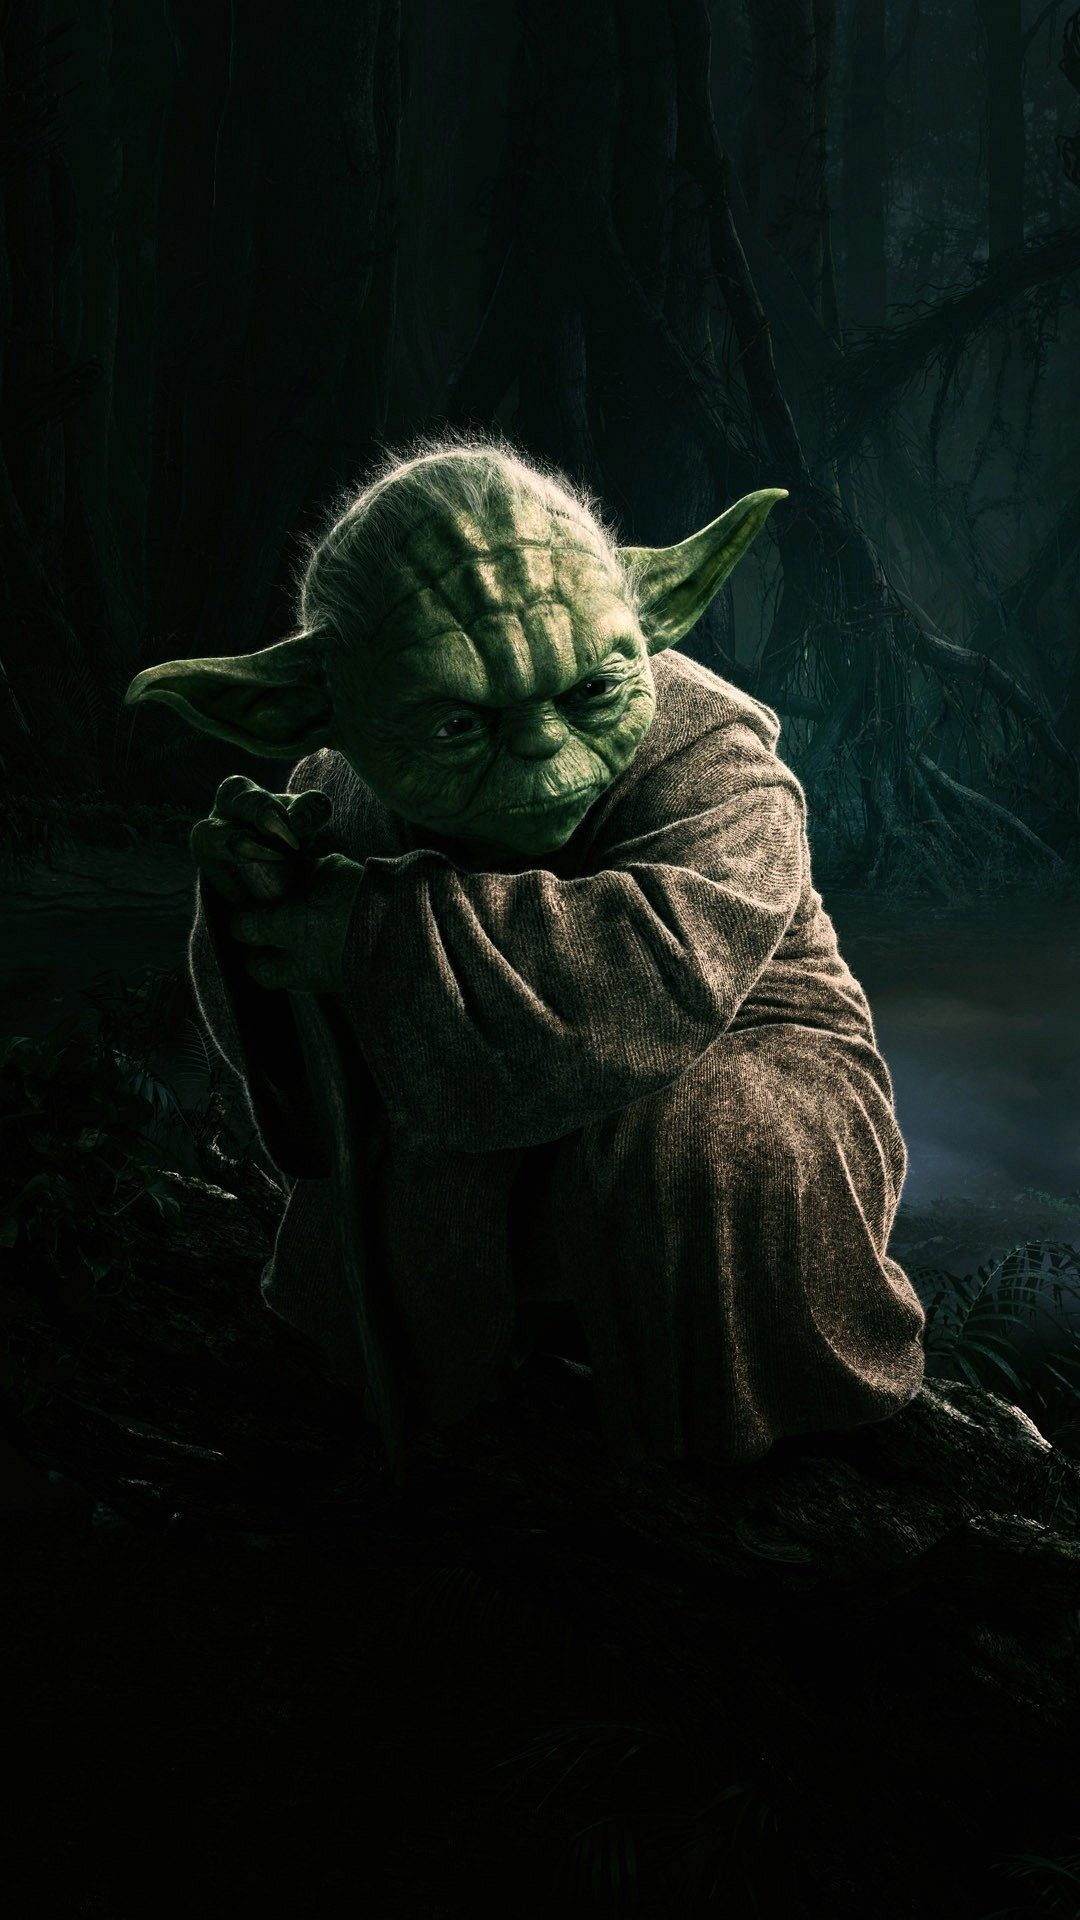 Star Wars Wallpaper 1080p Backgrounds Photos Images Pictures Yl Computing